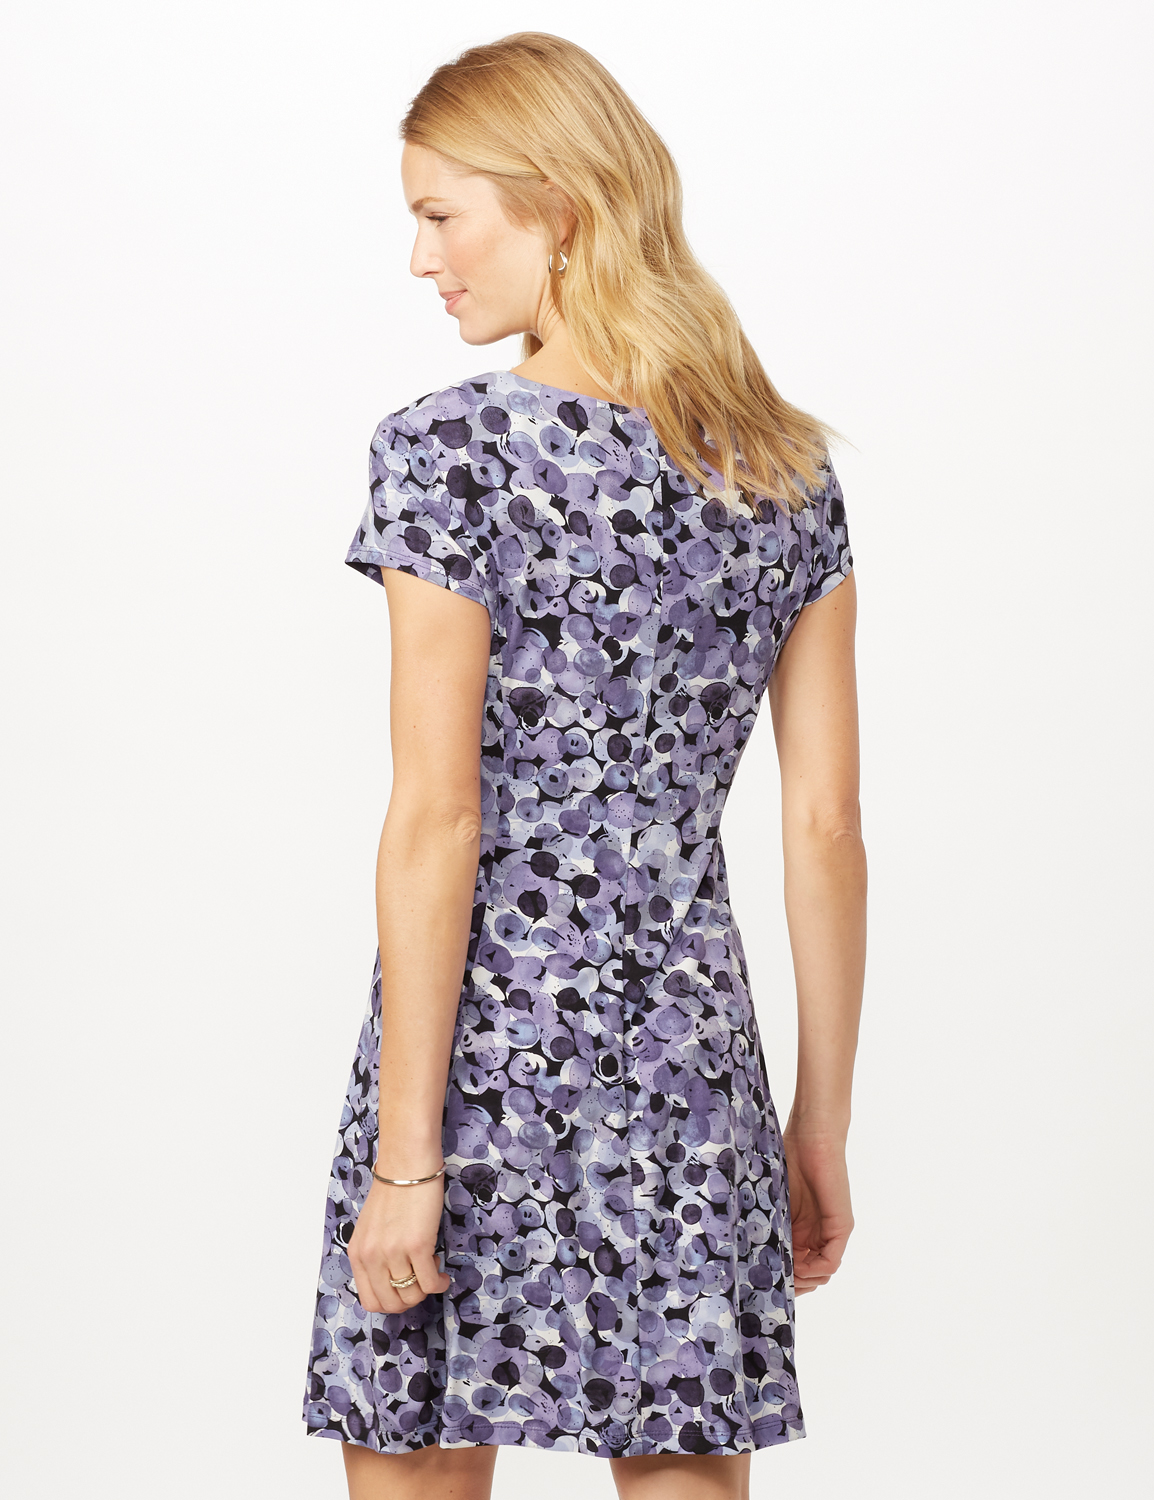 Bubble Dot Dress with Seam Detail -Lilac - Back